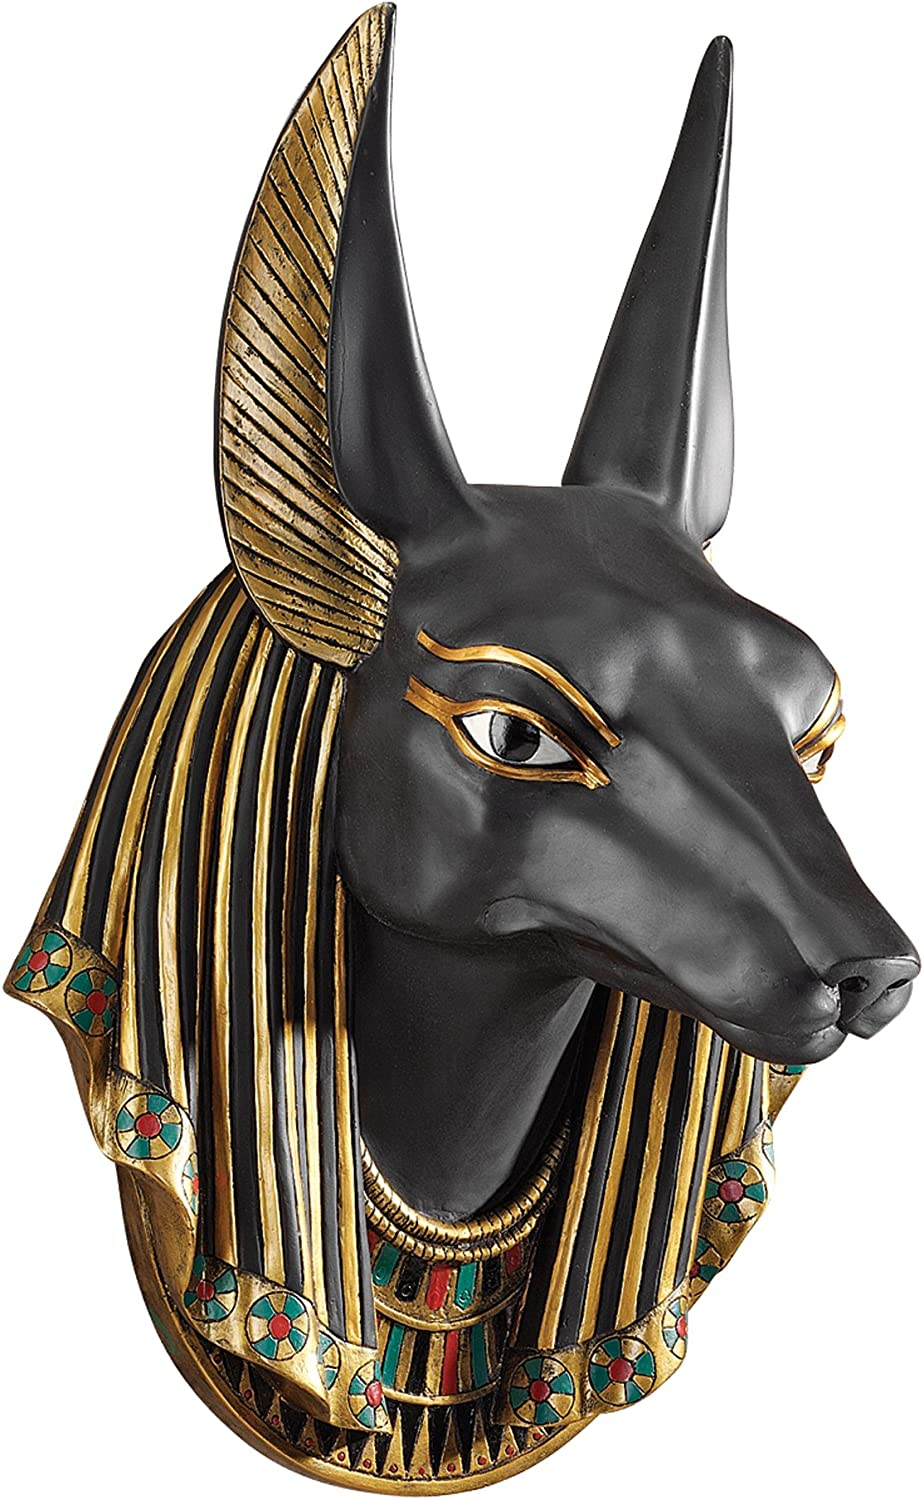 Design Toscano CL52612 Anubis the Jackal God Wall Egyptian Wall Sculpture, 15 Inch, Polyresin, Black and Gold